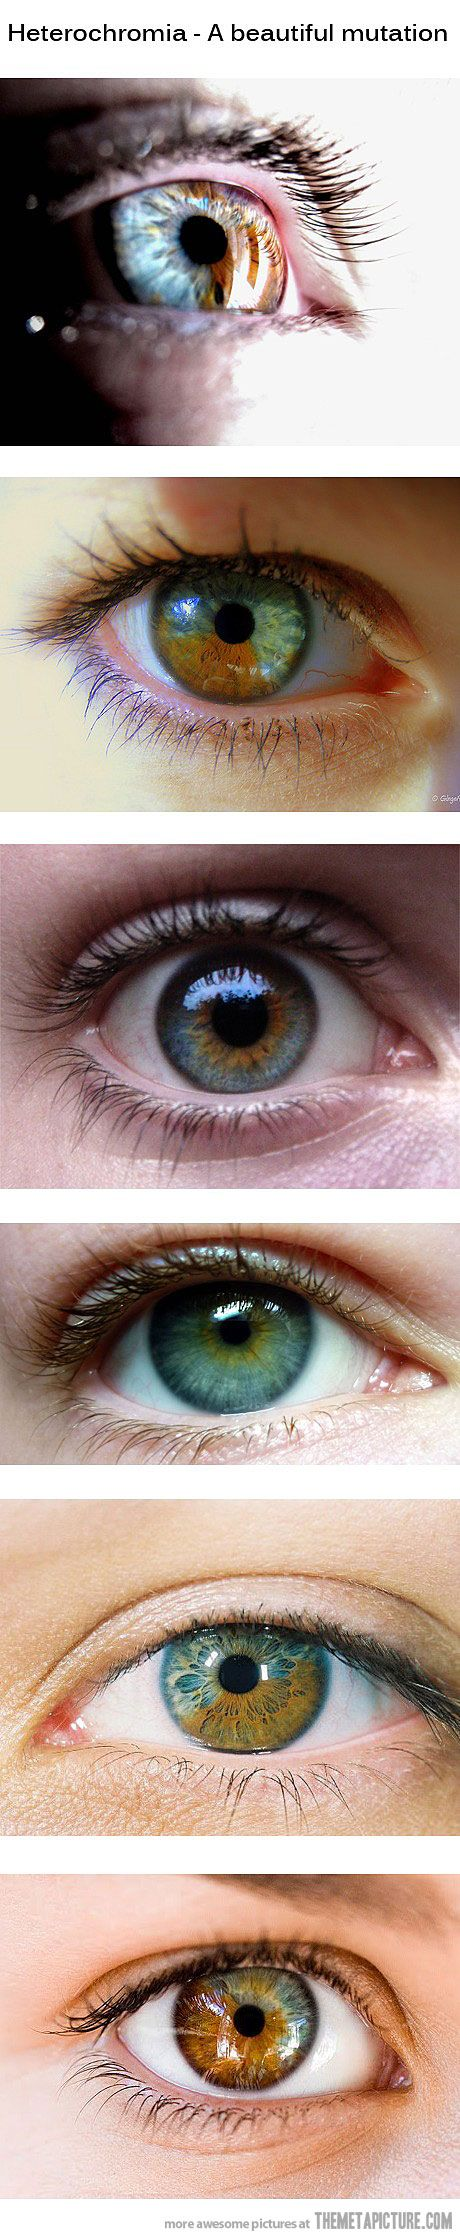 This post only shows sectoral heterochromia, or when one eye has two different colors. Heterochromia is usually when a person has two eyes with different colors.